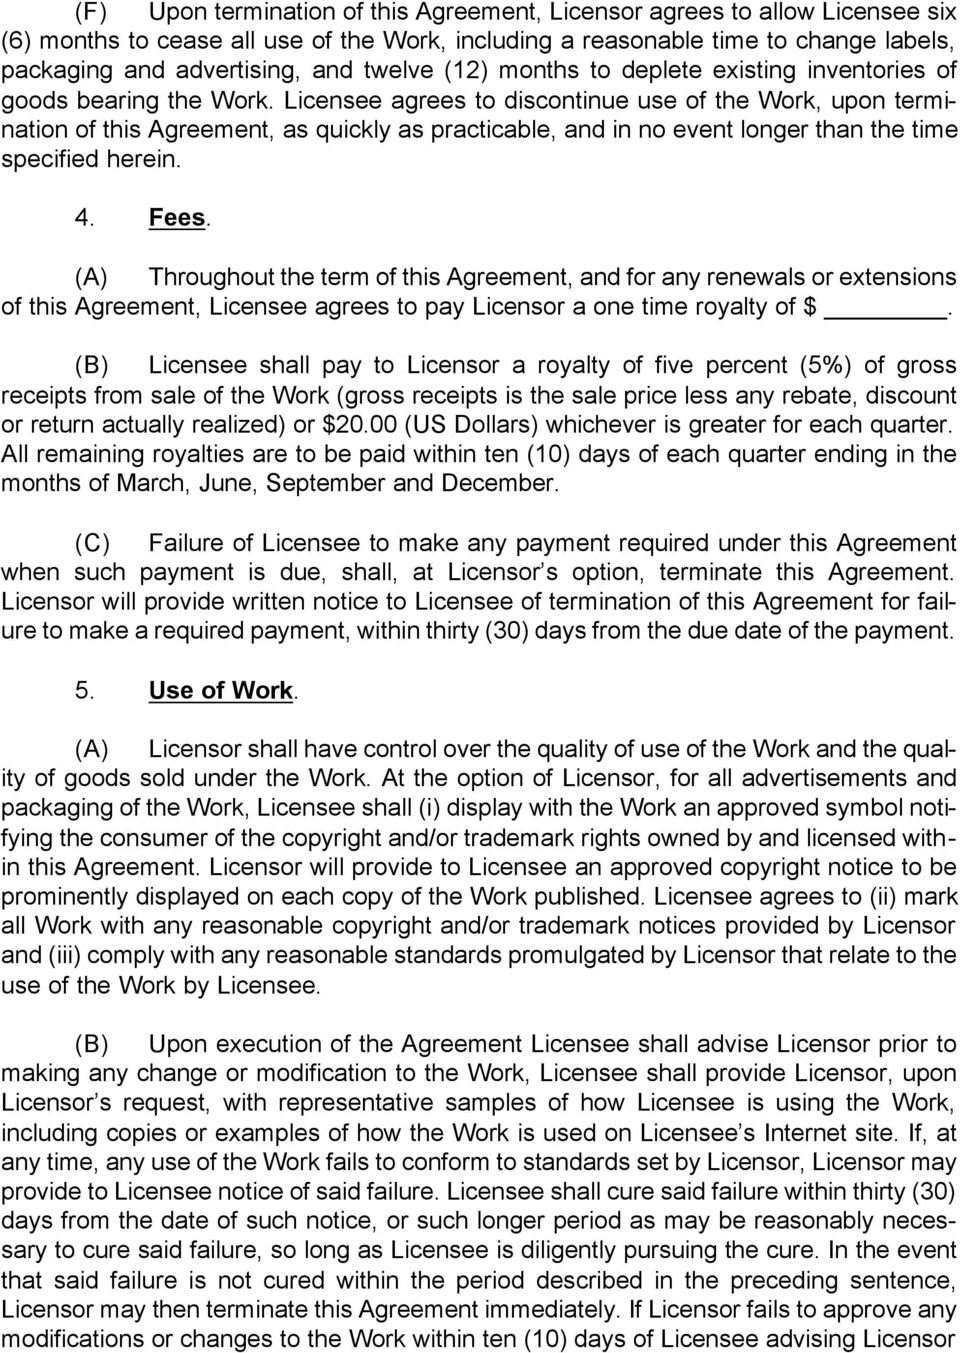 Licensee agrees to discontinue use of the Work, upon termination of this Agreement, as quickly as practicable, and in no event longer than the time specified herein. 4. Fees.